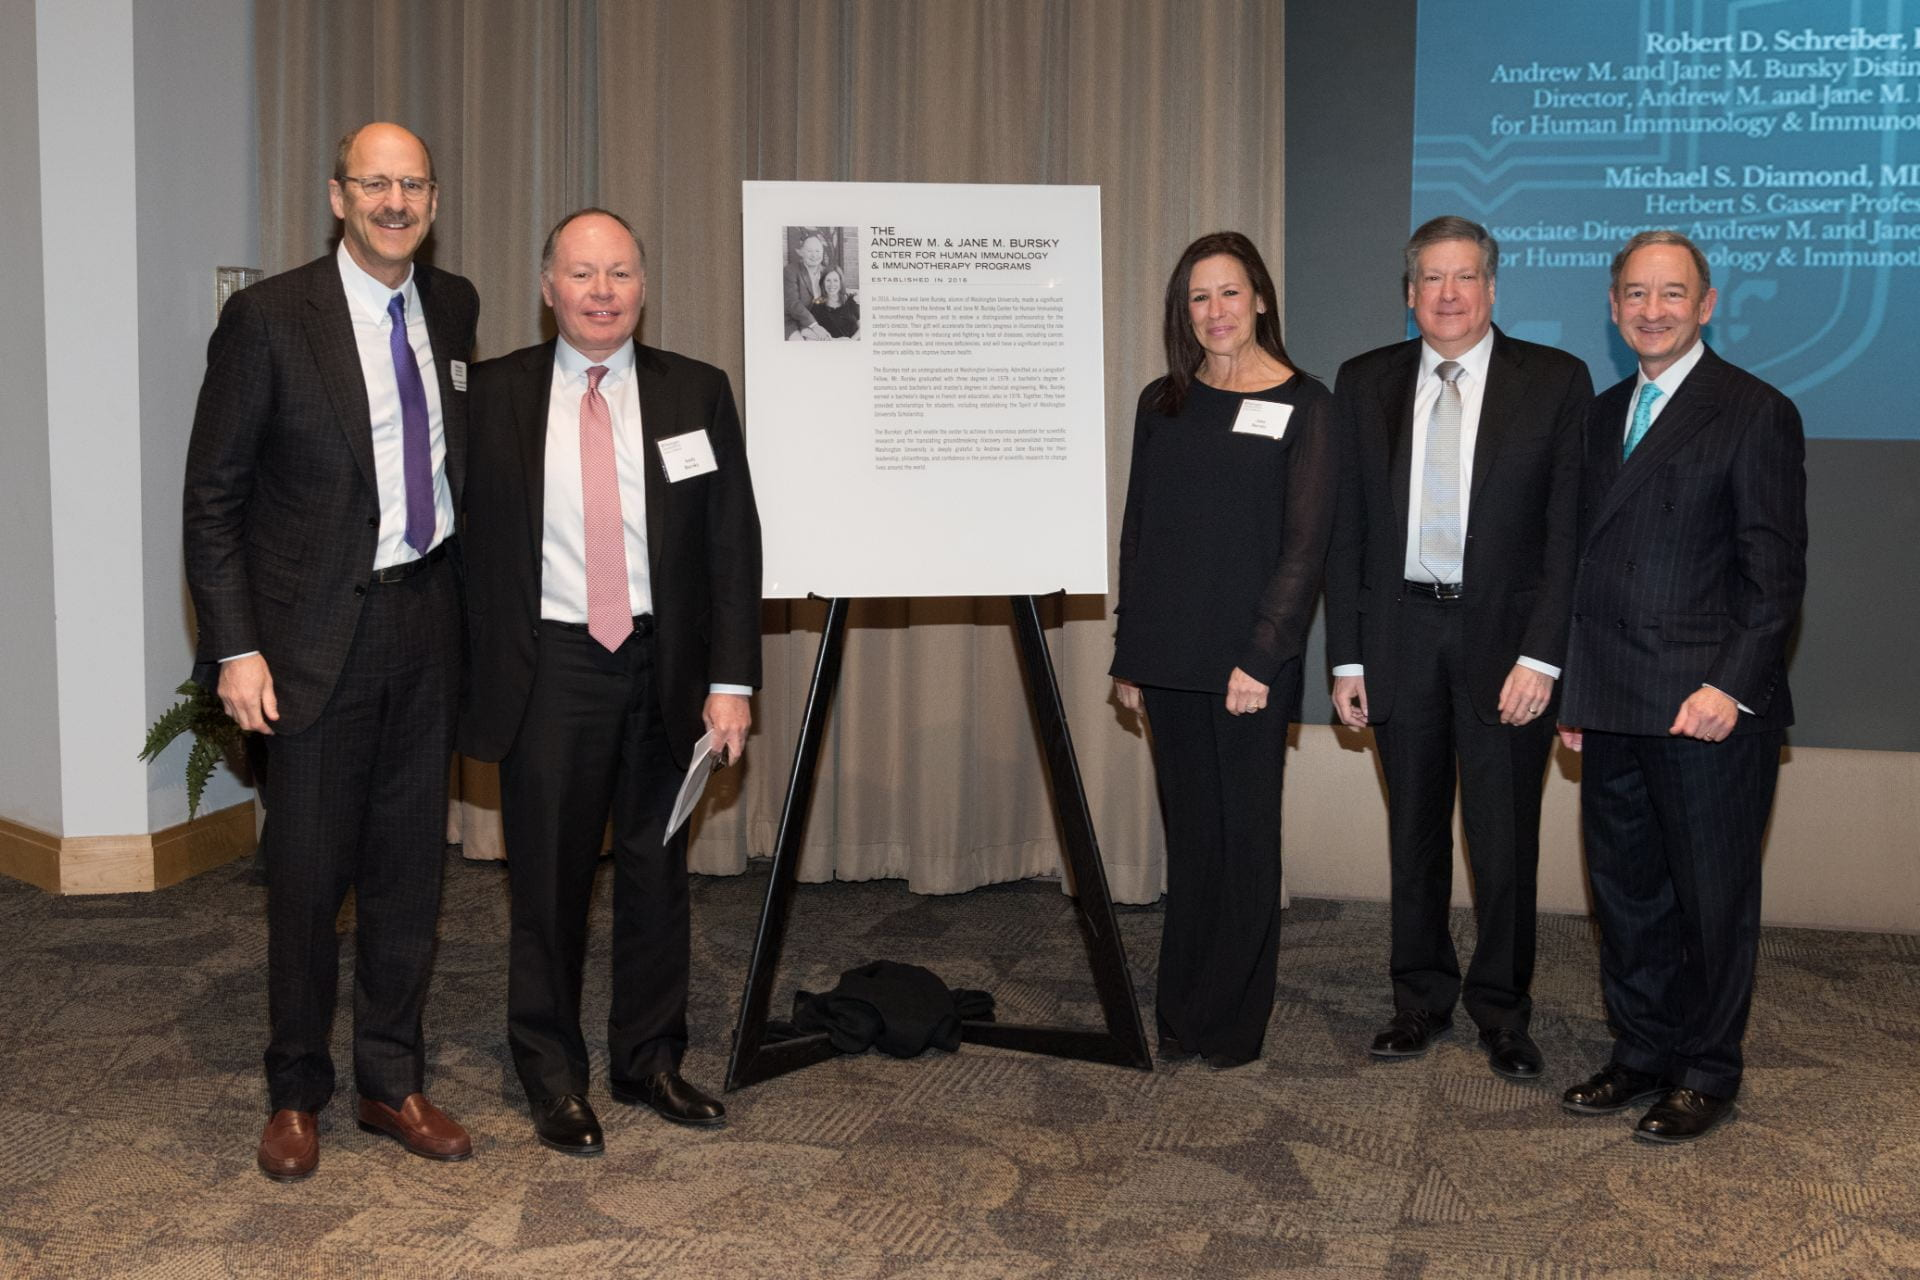 Dean Perlmutter, Andy Bursky, Jane Bursky, Bob Schreiber and Chancellor Wrighton after unveiling the plaque.